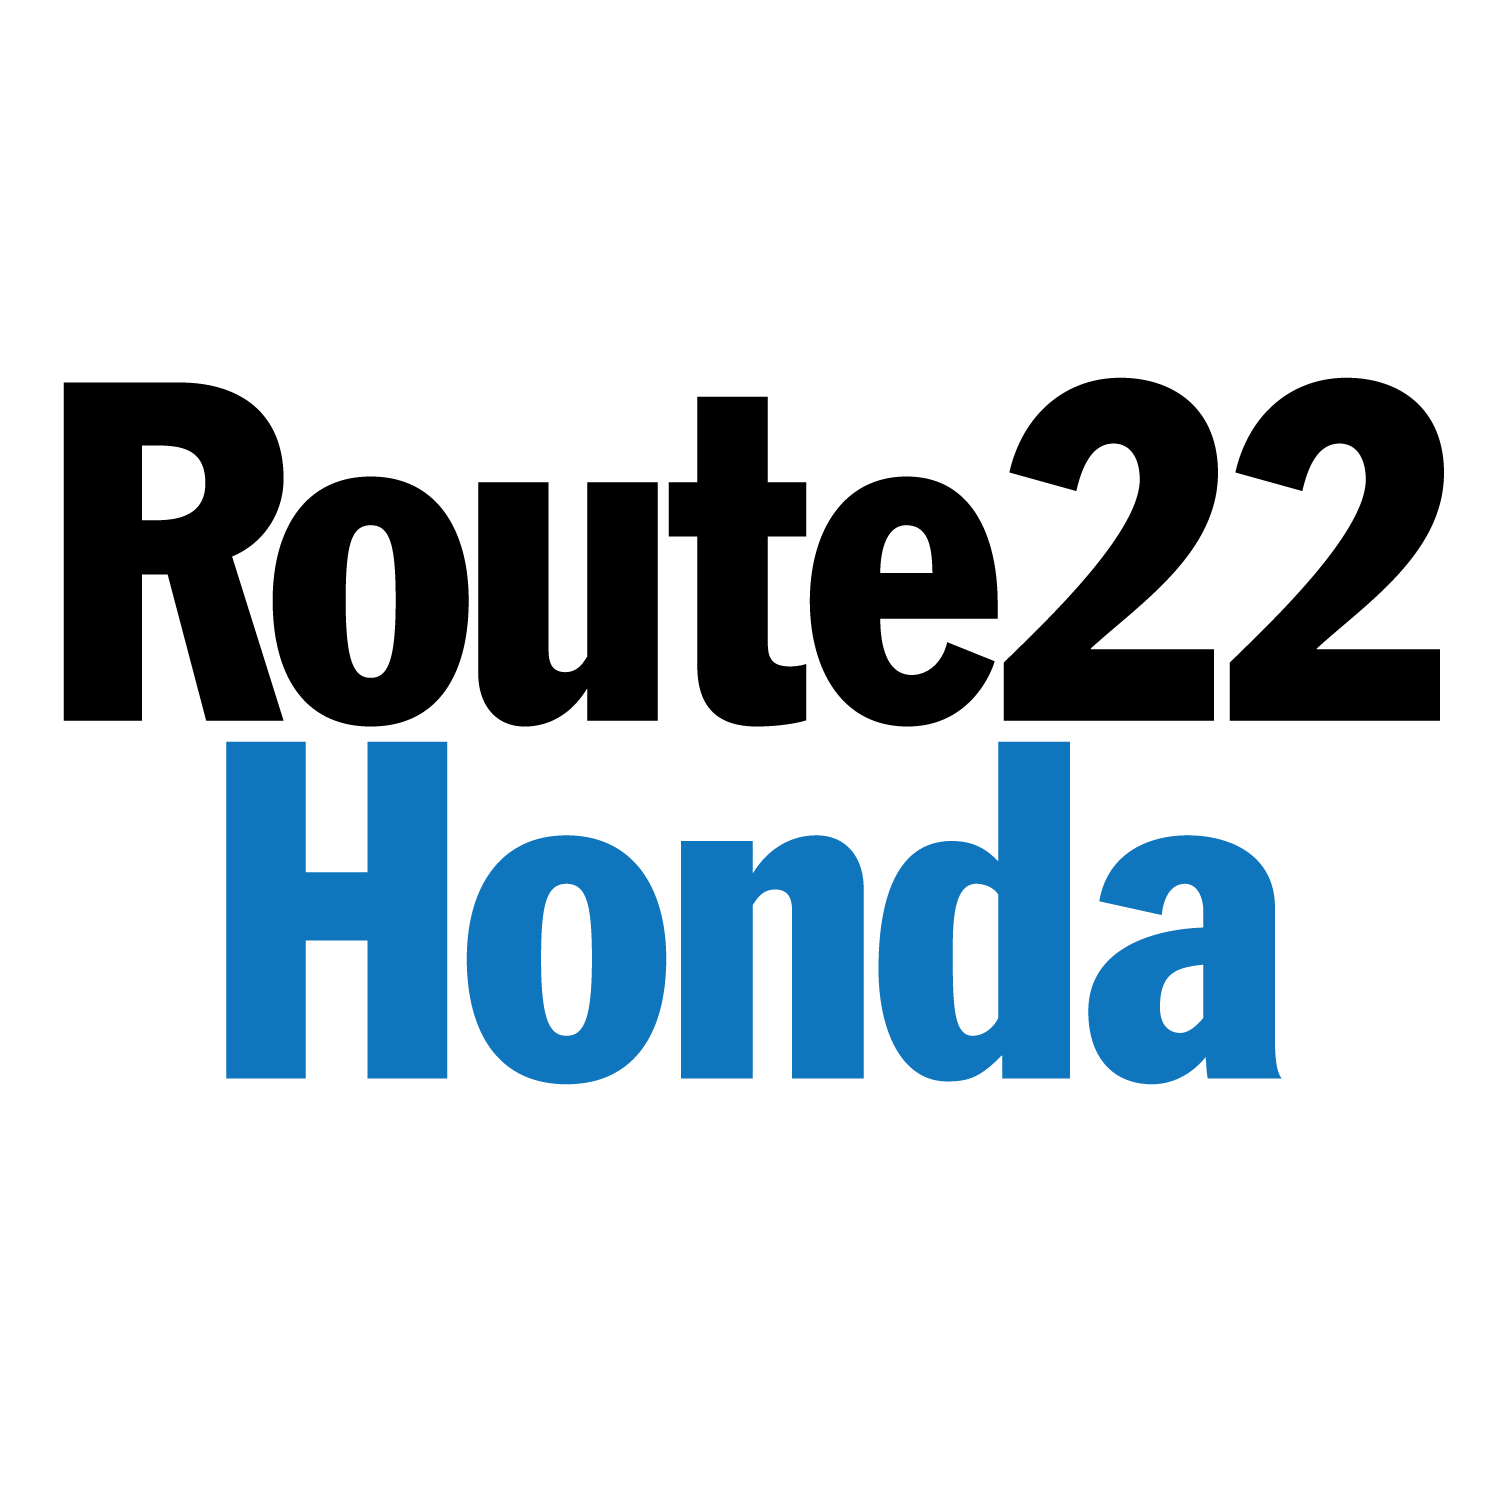 Rt 22 Honda >> Route 22 Honda Hillside Nj 07205 855 690 4634